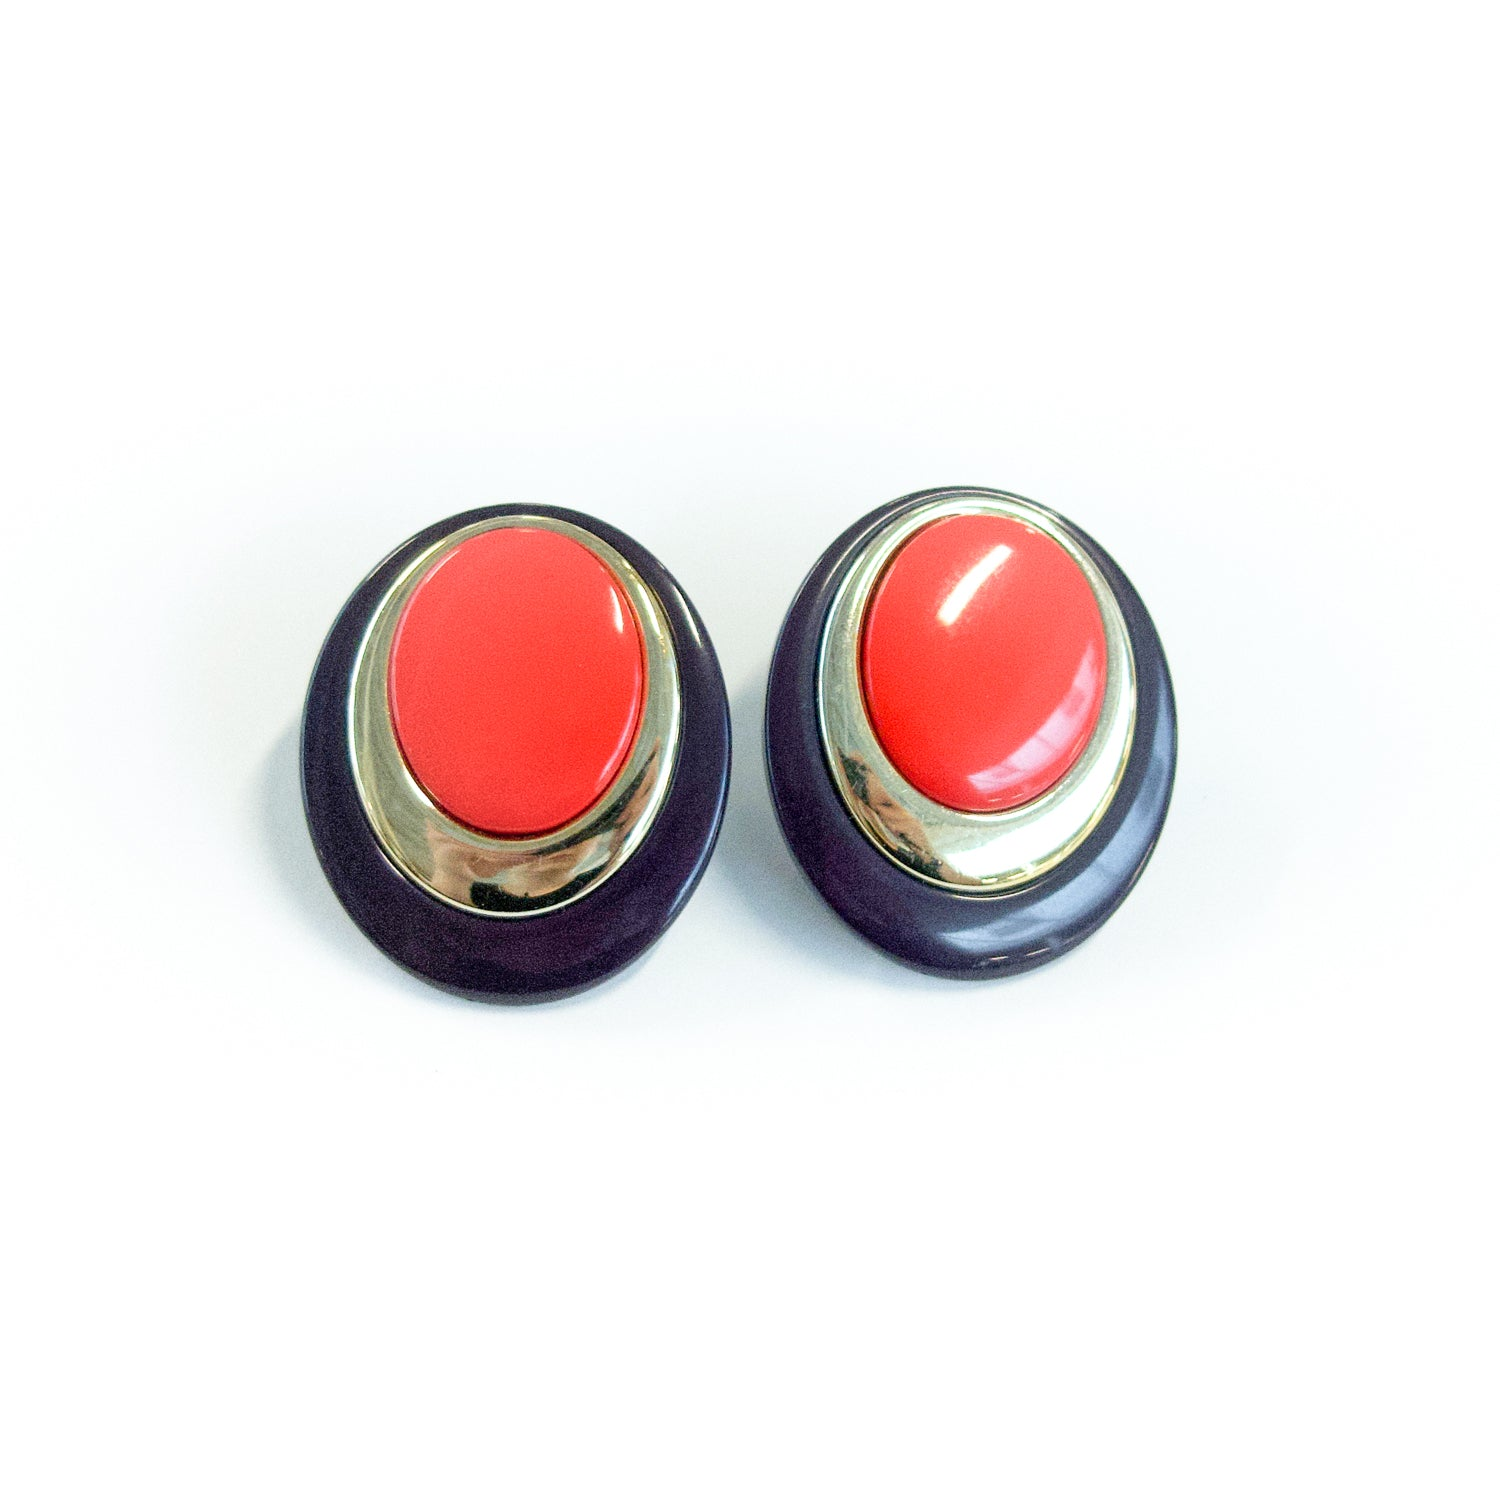 "Second Room Vintage Clothing. Vintage navy blue, red and gold tone oval stud earrings. Earrings are 1.25"" wide and 1.5"" tall. Original earring backs have been replaced with new, clear silicone backings. Free North American shipping on all orders."